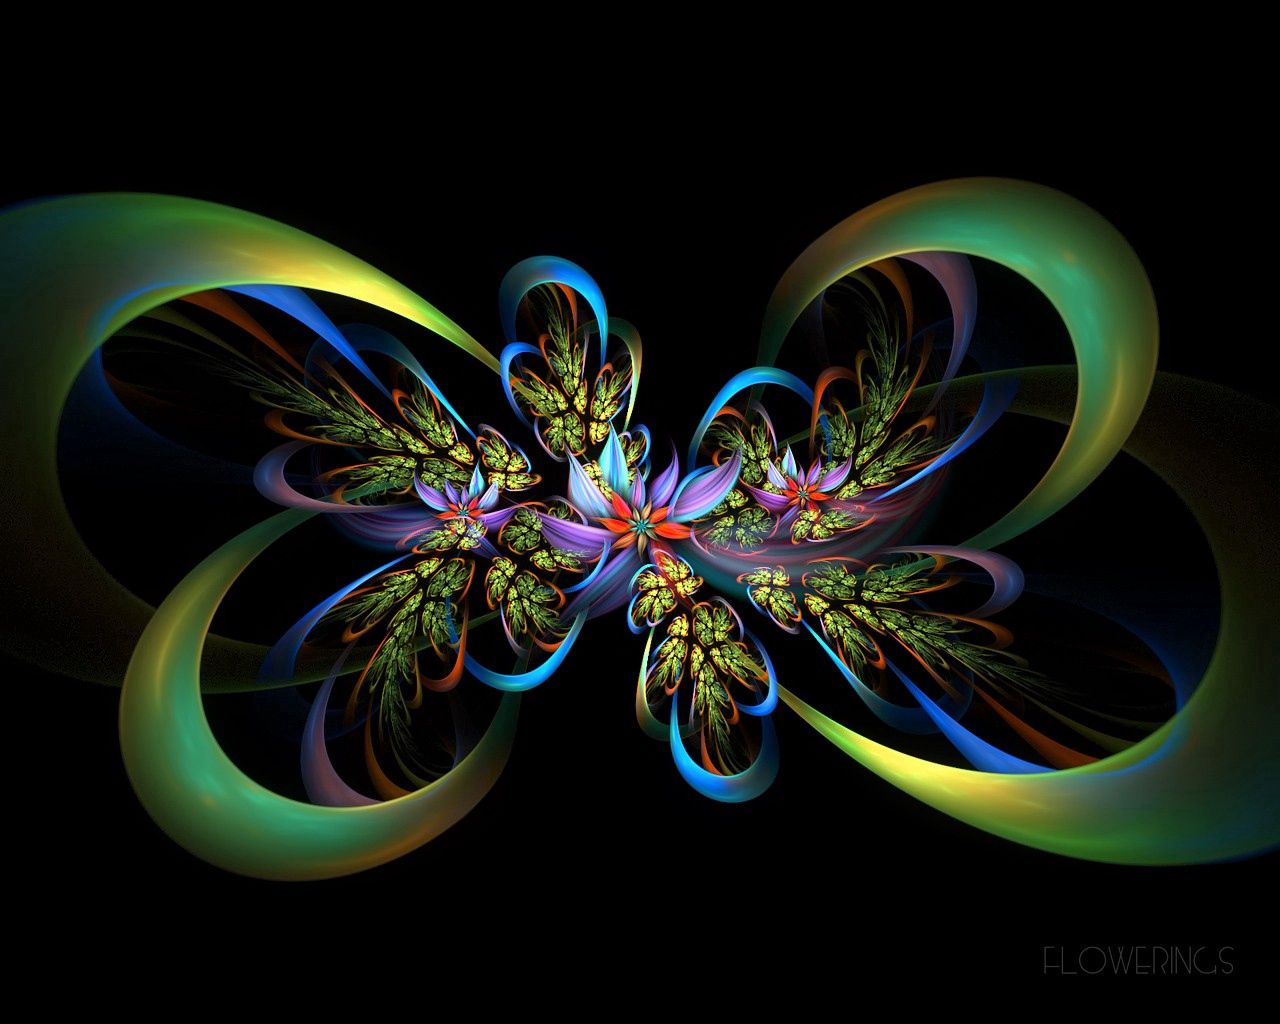 136139 download wallpaper Abstract, Fractal, Lines, Flowers, Patterns screensavers and pictures for free